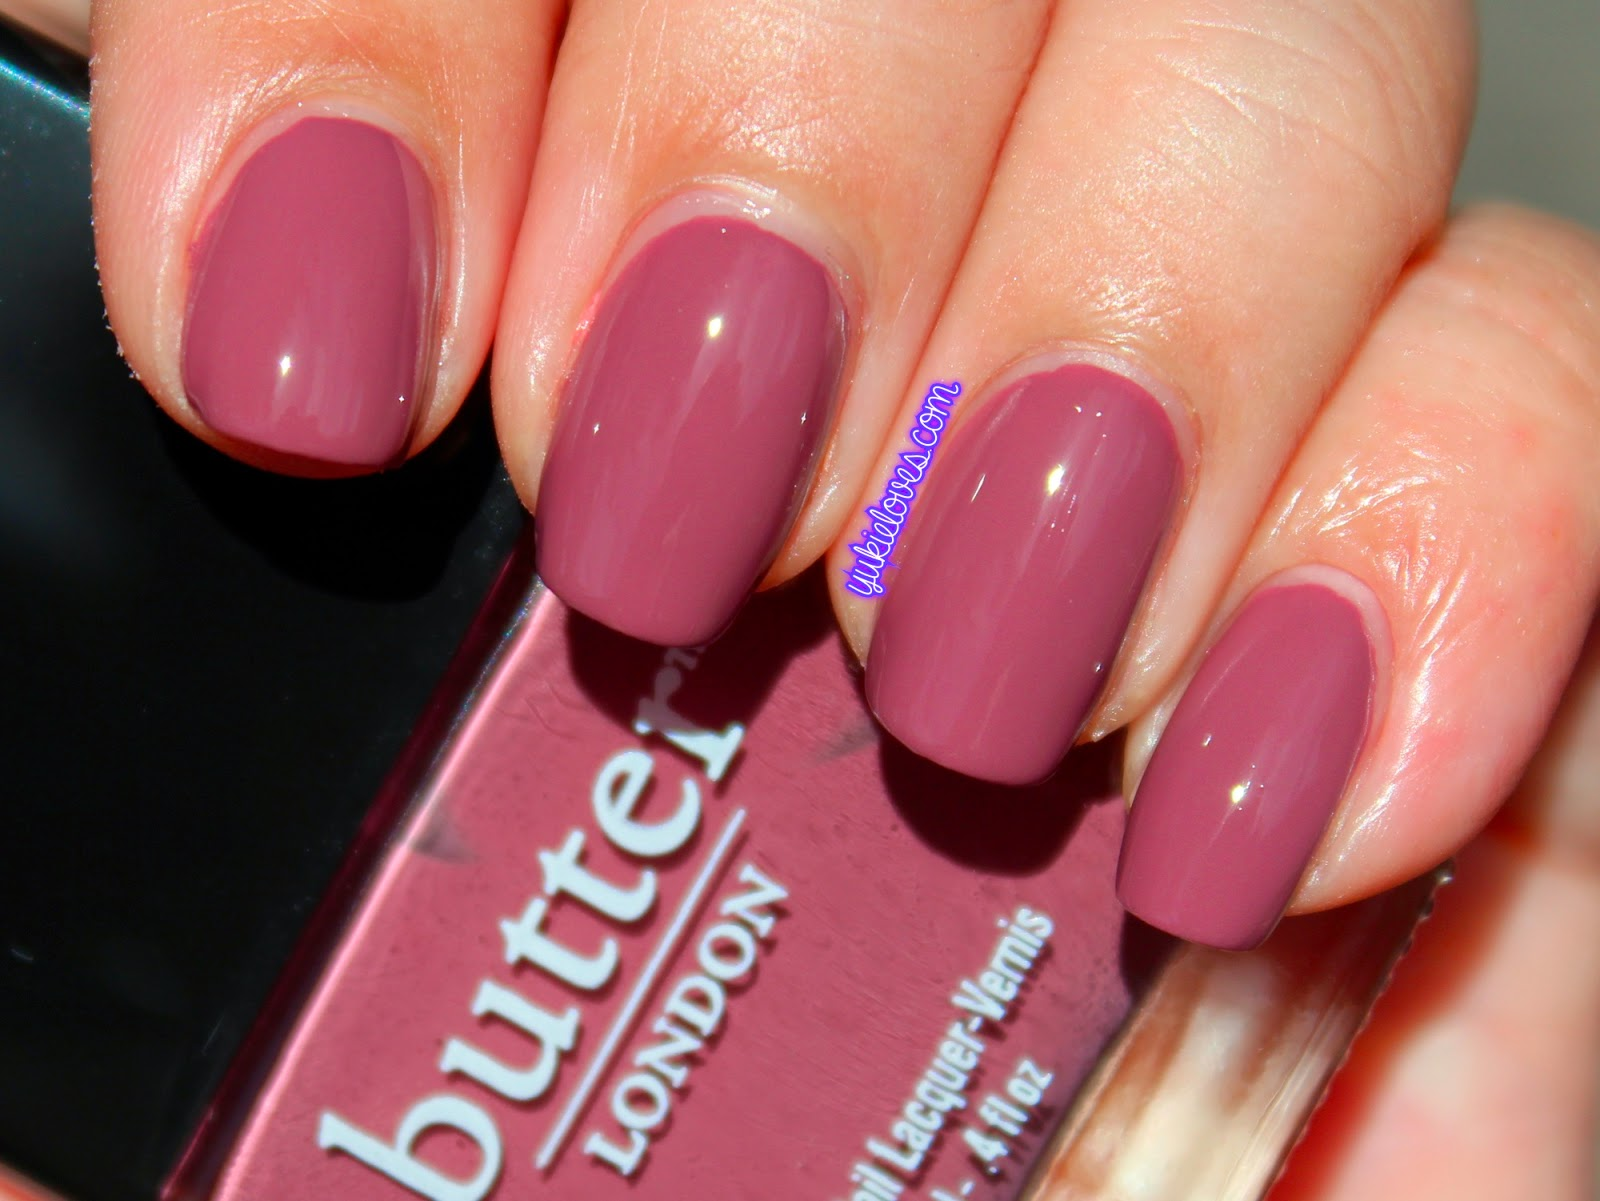 Butter London Toff | Swatches & Review!